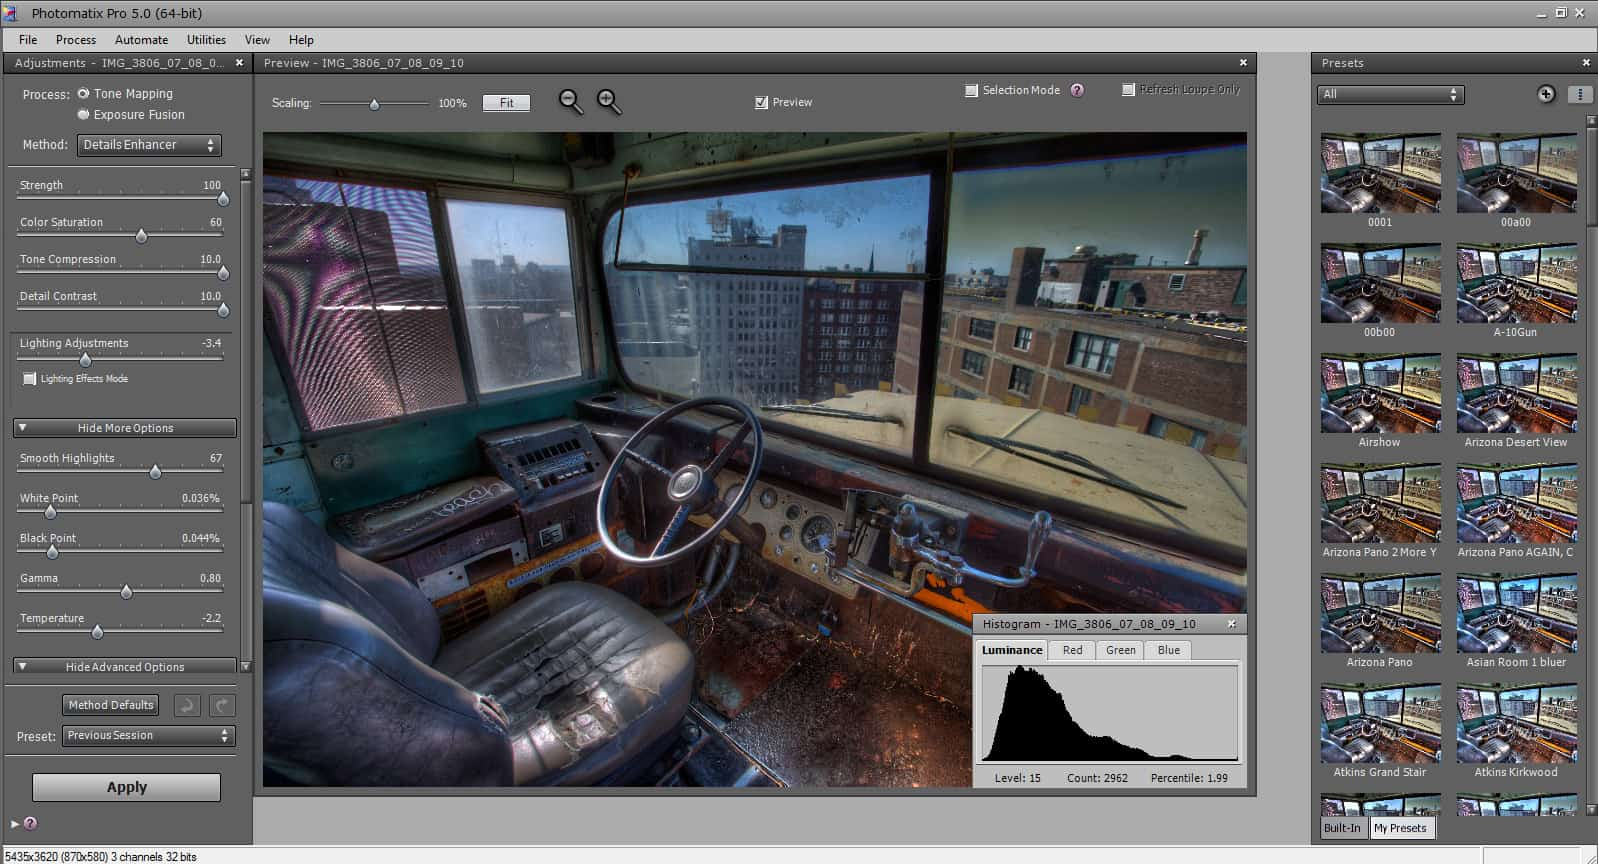 What's New In Photomatix Pro 5.0